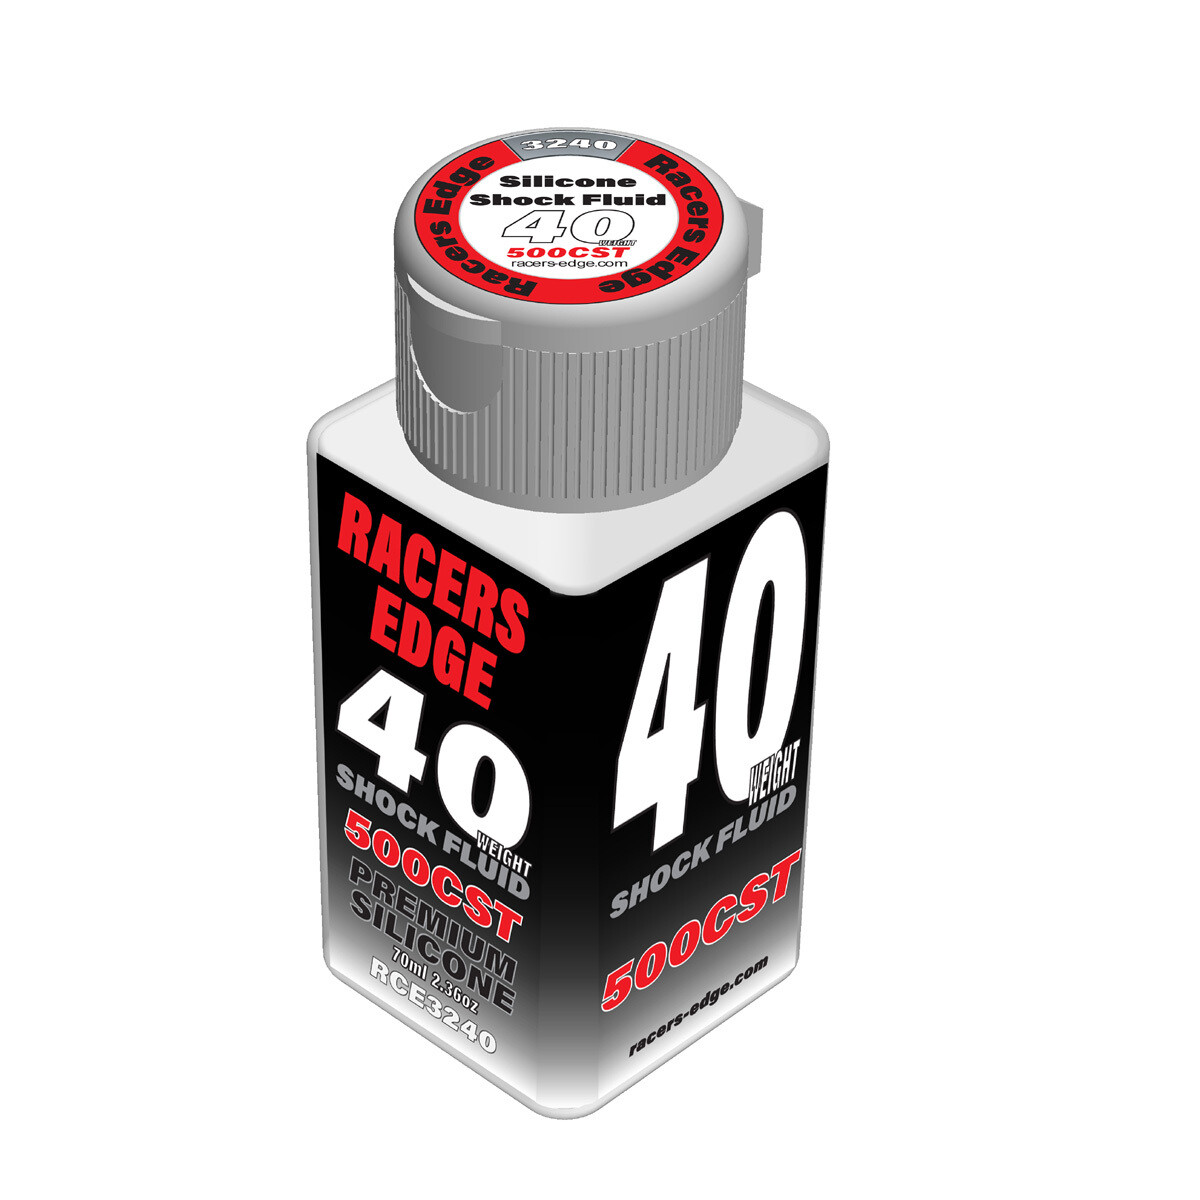 Racers Edge 40 Weight, 500cSt, 70ml 2.36oz Pure Silicone Shock Oil RCE3240